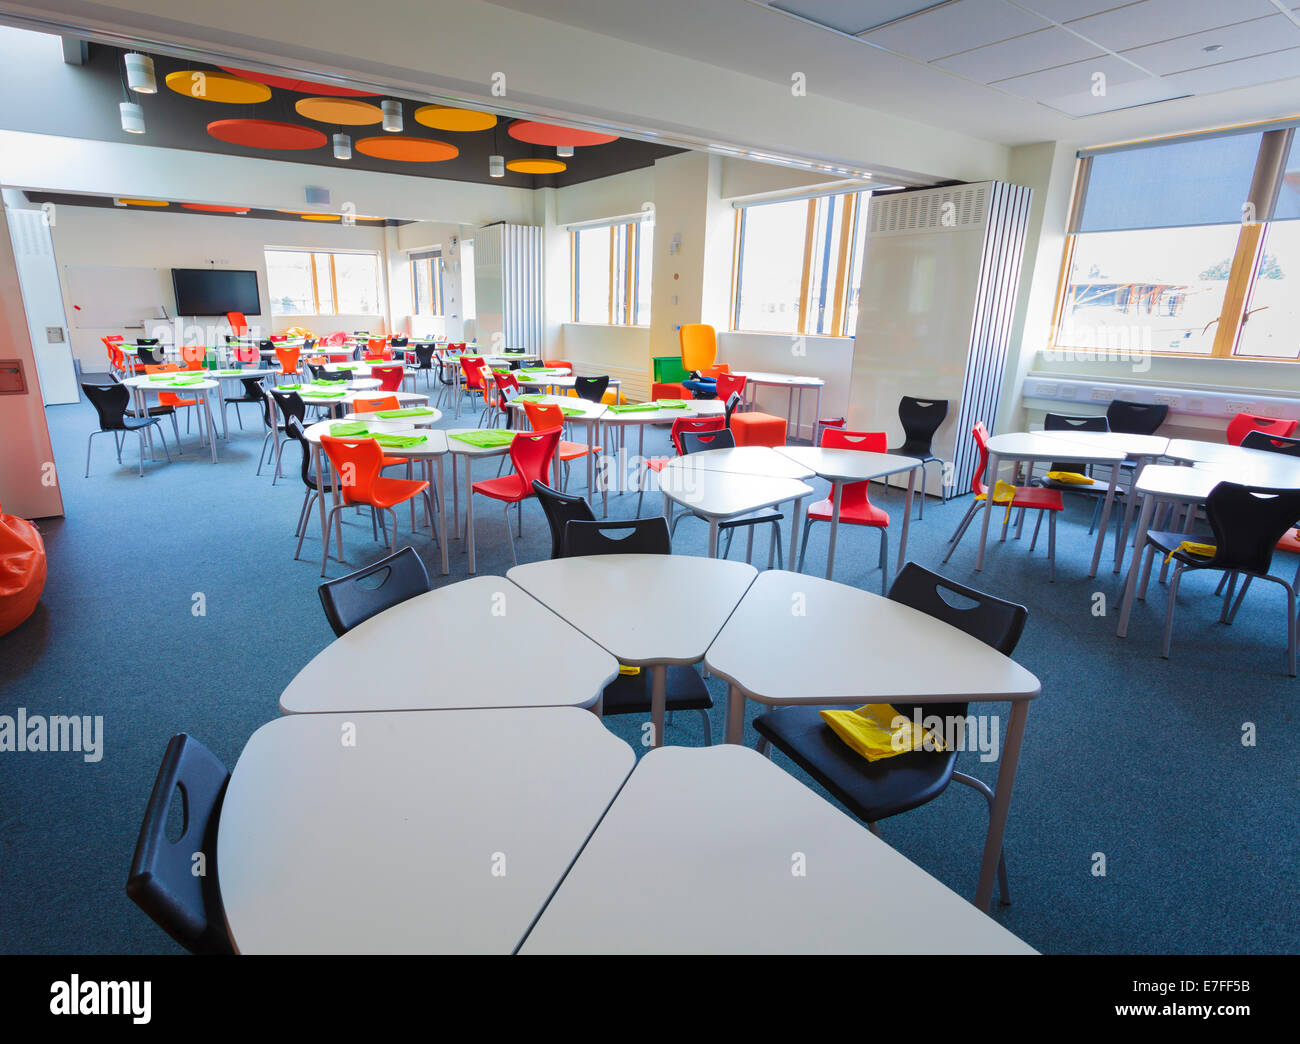 Modern Classroom In The ~ Unoccupied modern school classroom with desks in a circle